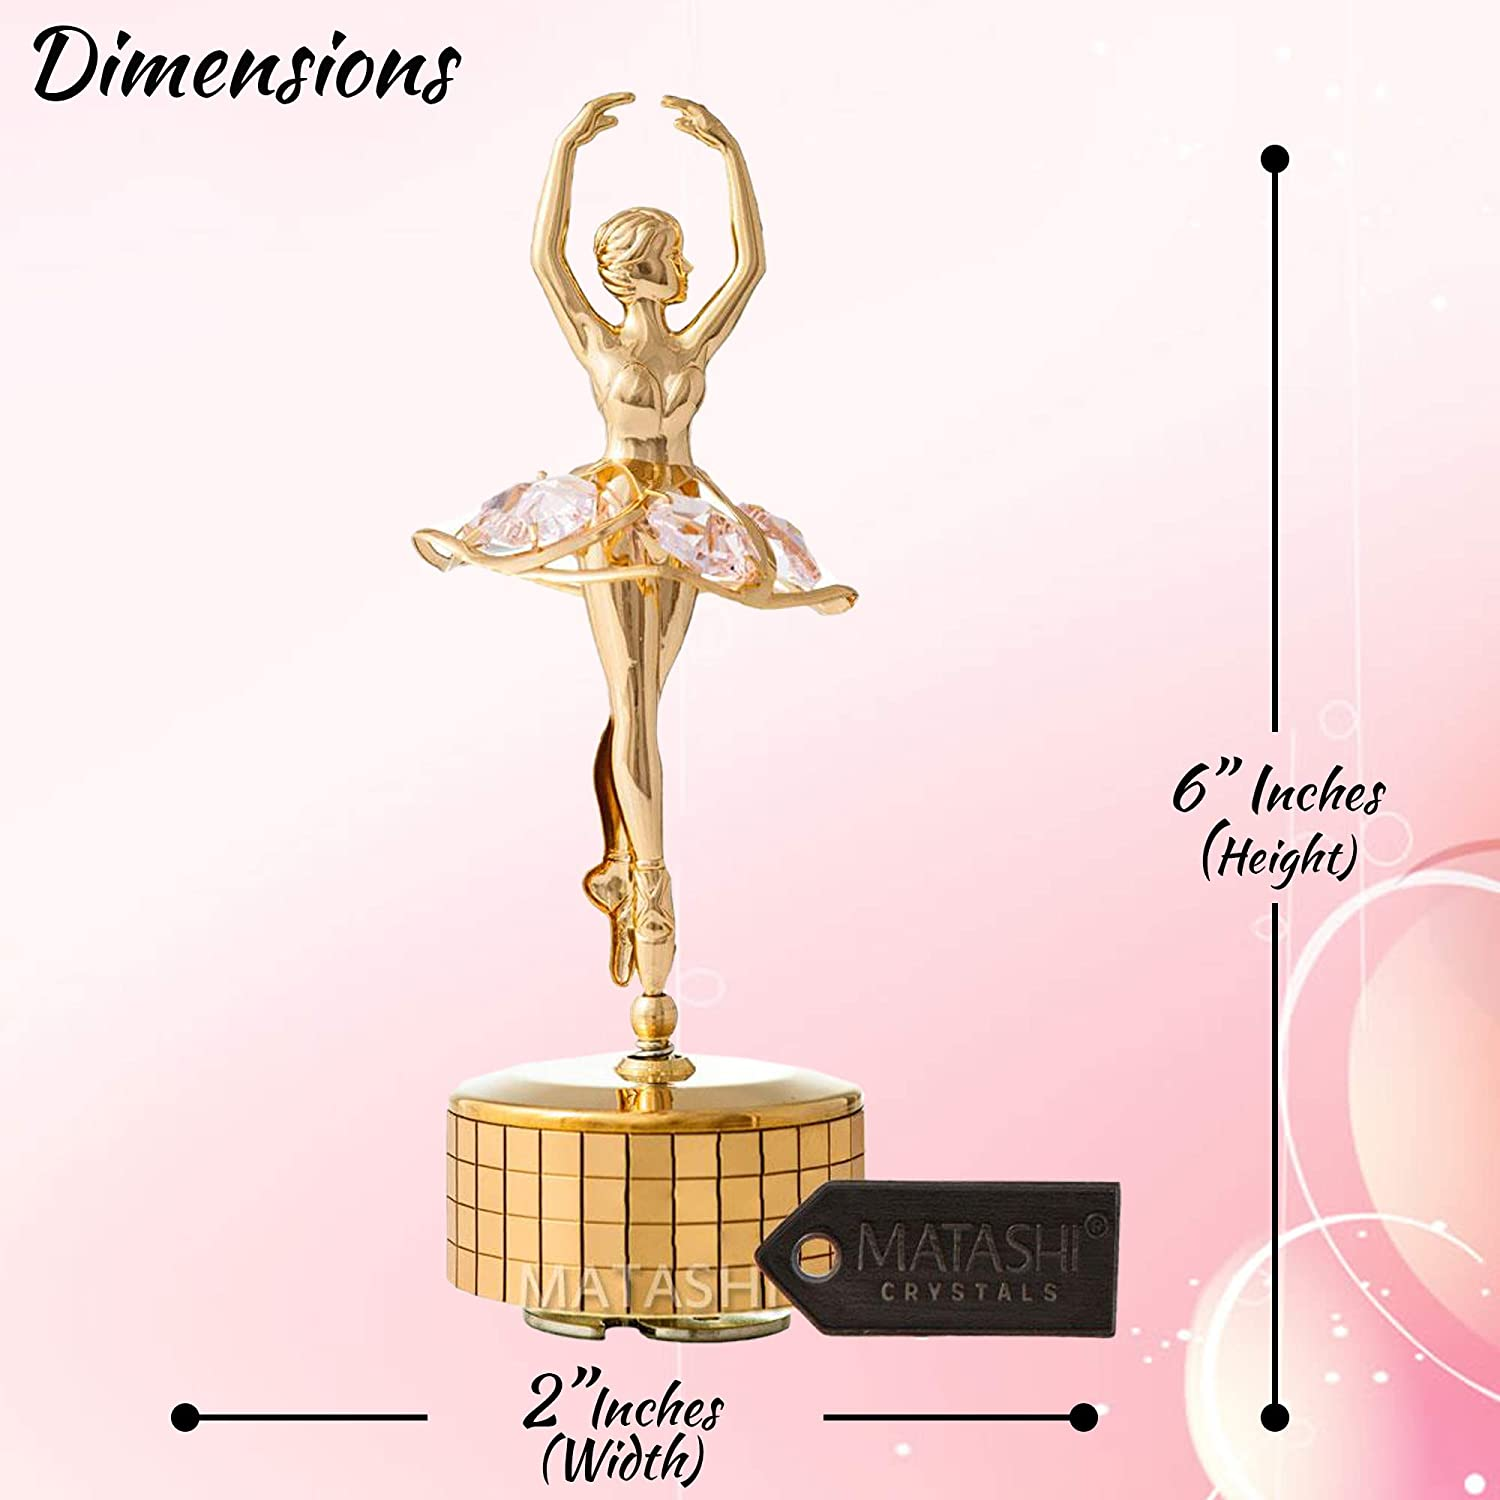 Home Bedroom Decor Tabletop Ornaments Gift for Musician Wife Mom on Mothers Day Christmas Valentines Day Birthday Matashi 24k Gold Plated Ballet Dancer Wind-Up Music Box with Pink Crystals Memory